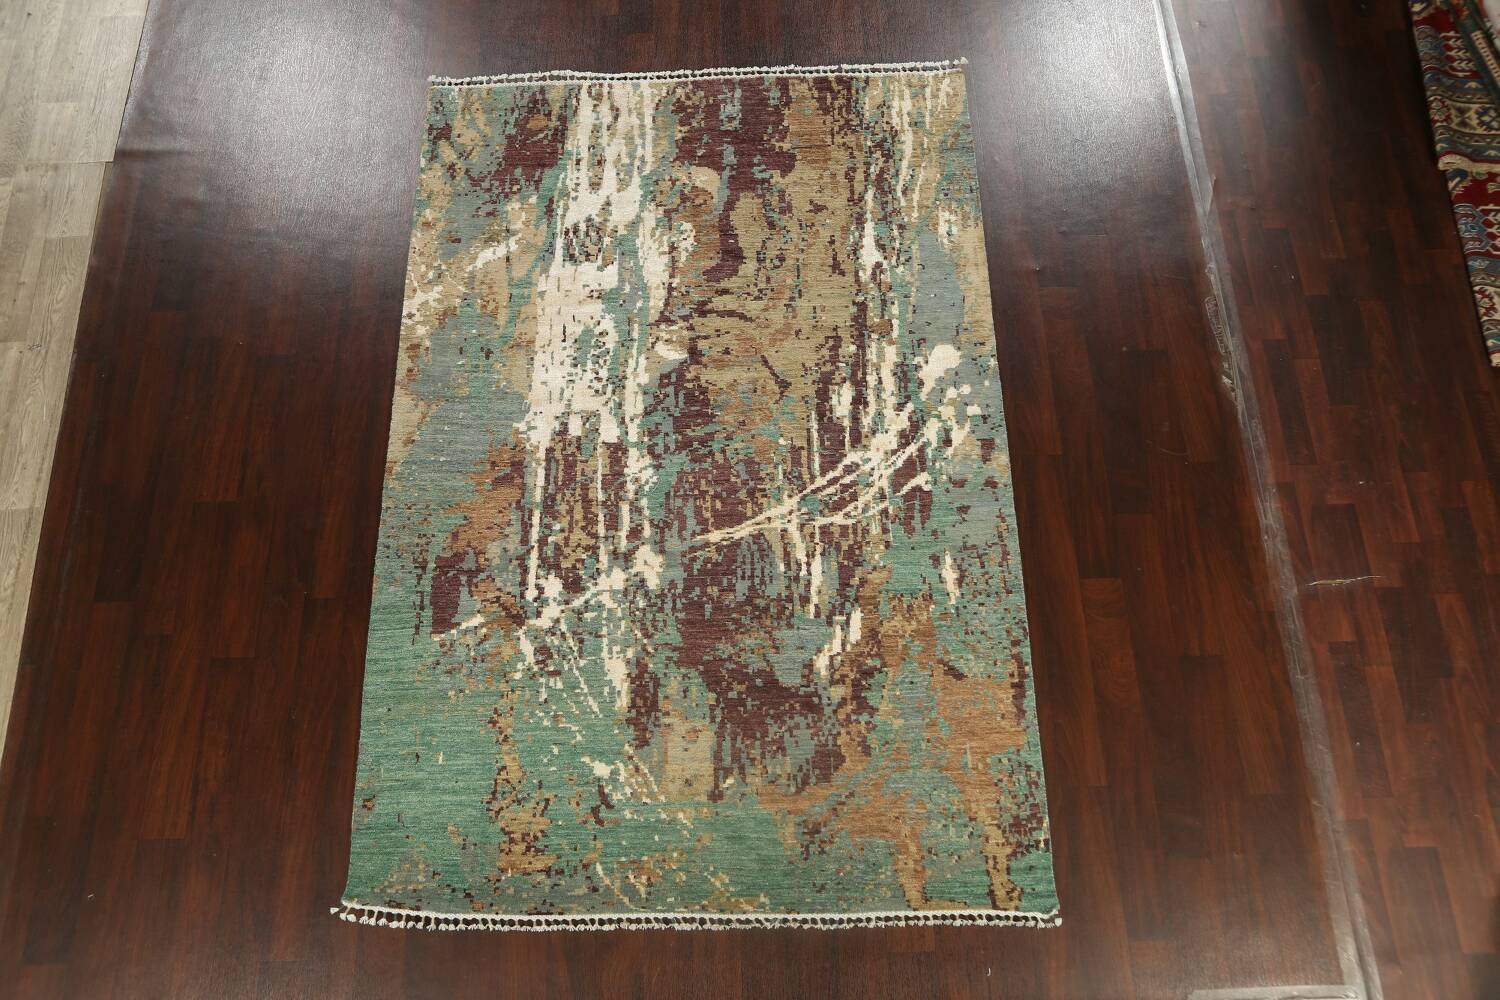 Vegetable Dye Contemporary Abstract Oriental Area Rug 6x9 image 17